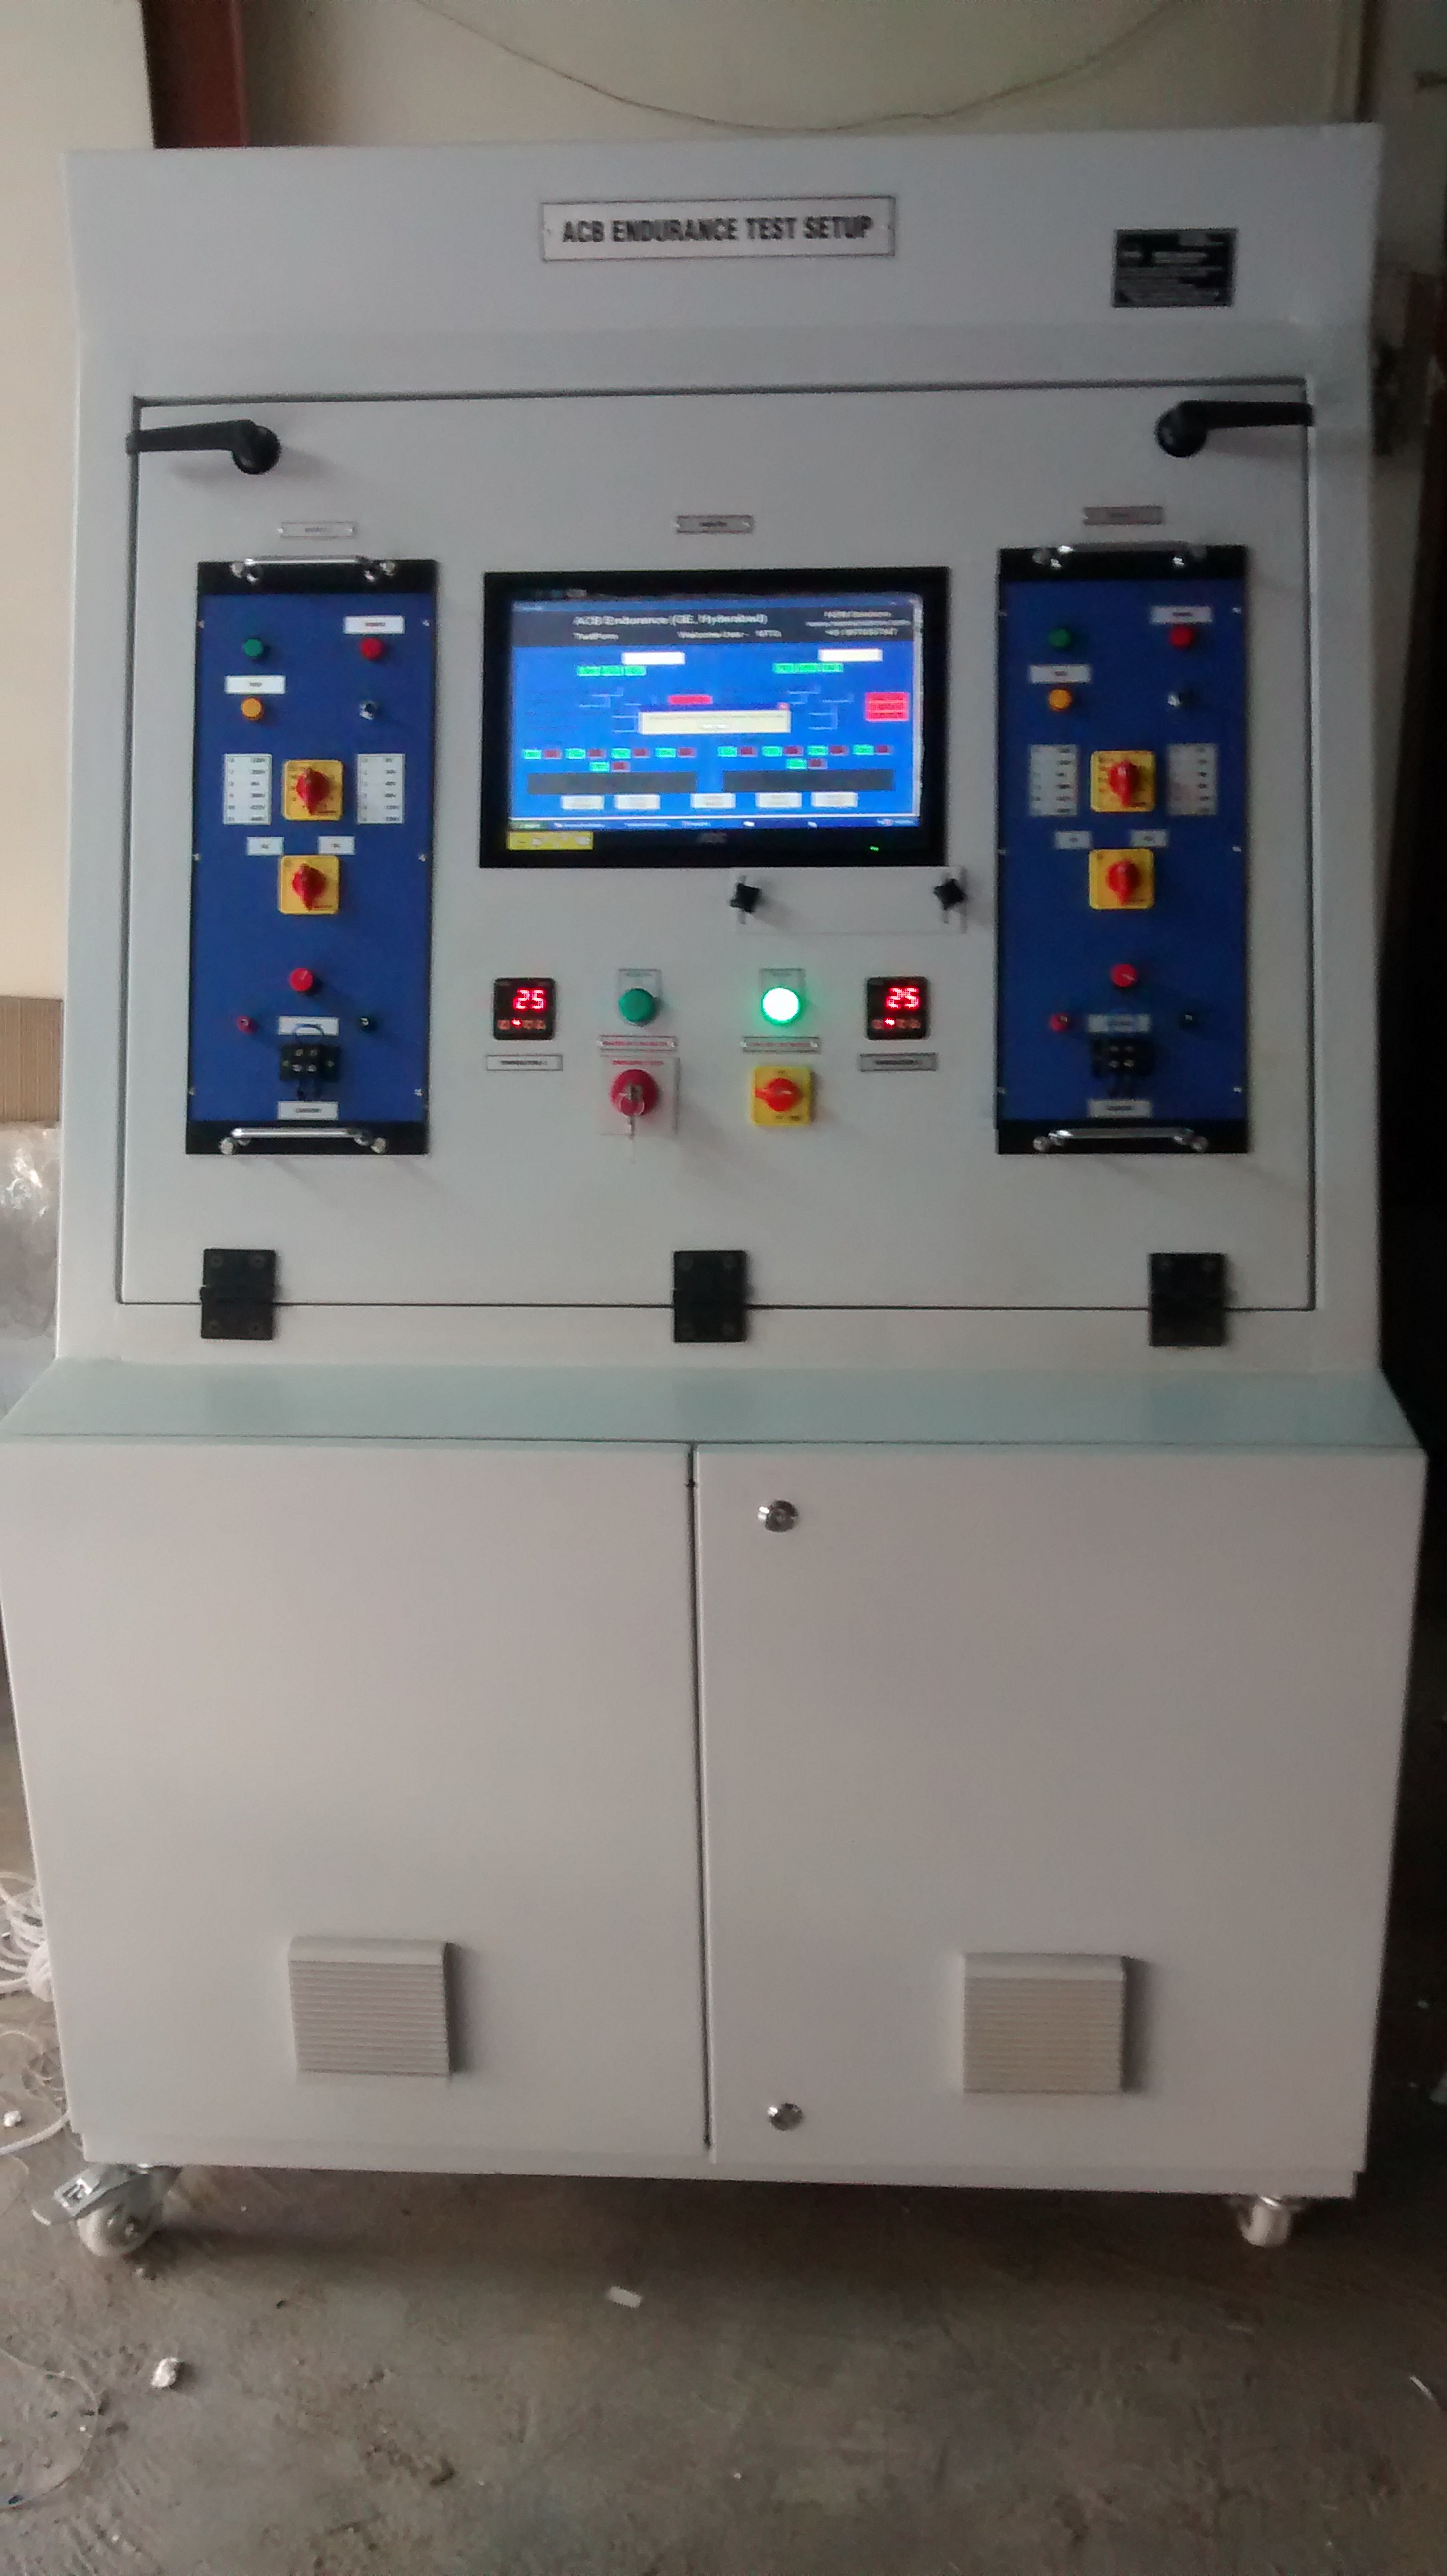 ACB (Air Circuit Breaker) Analyzer